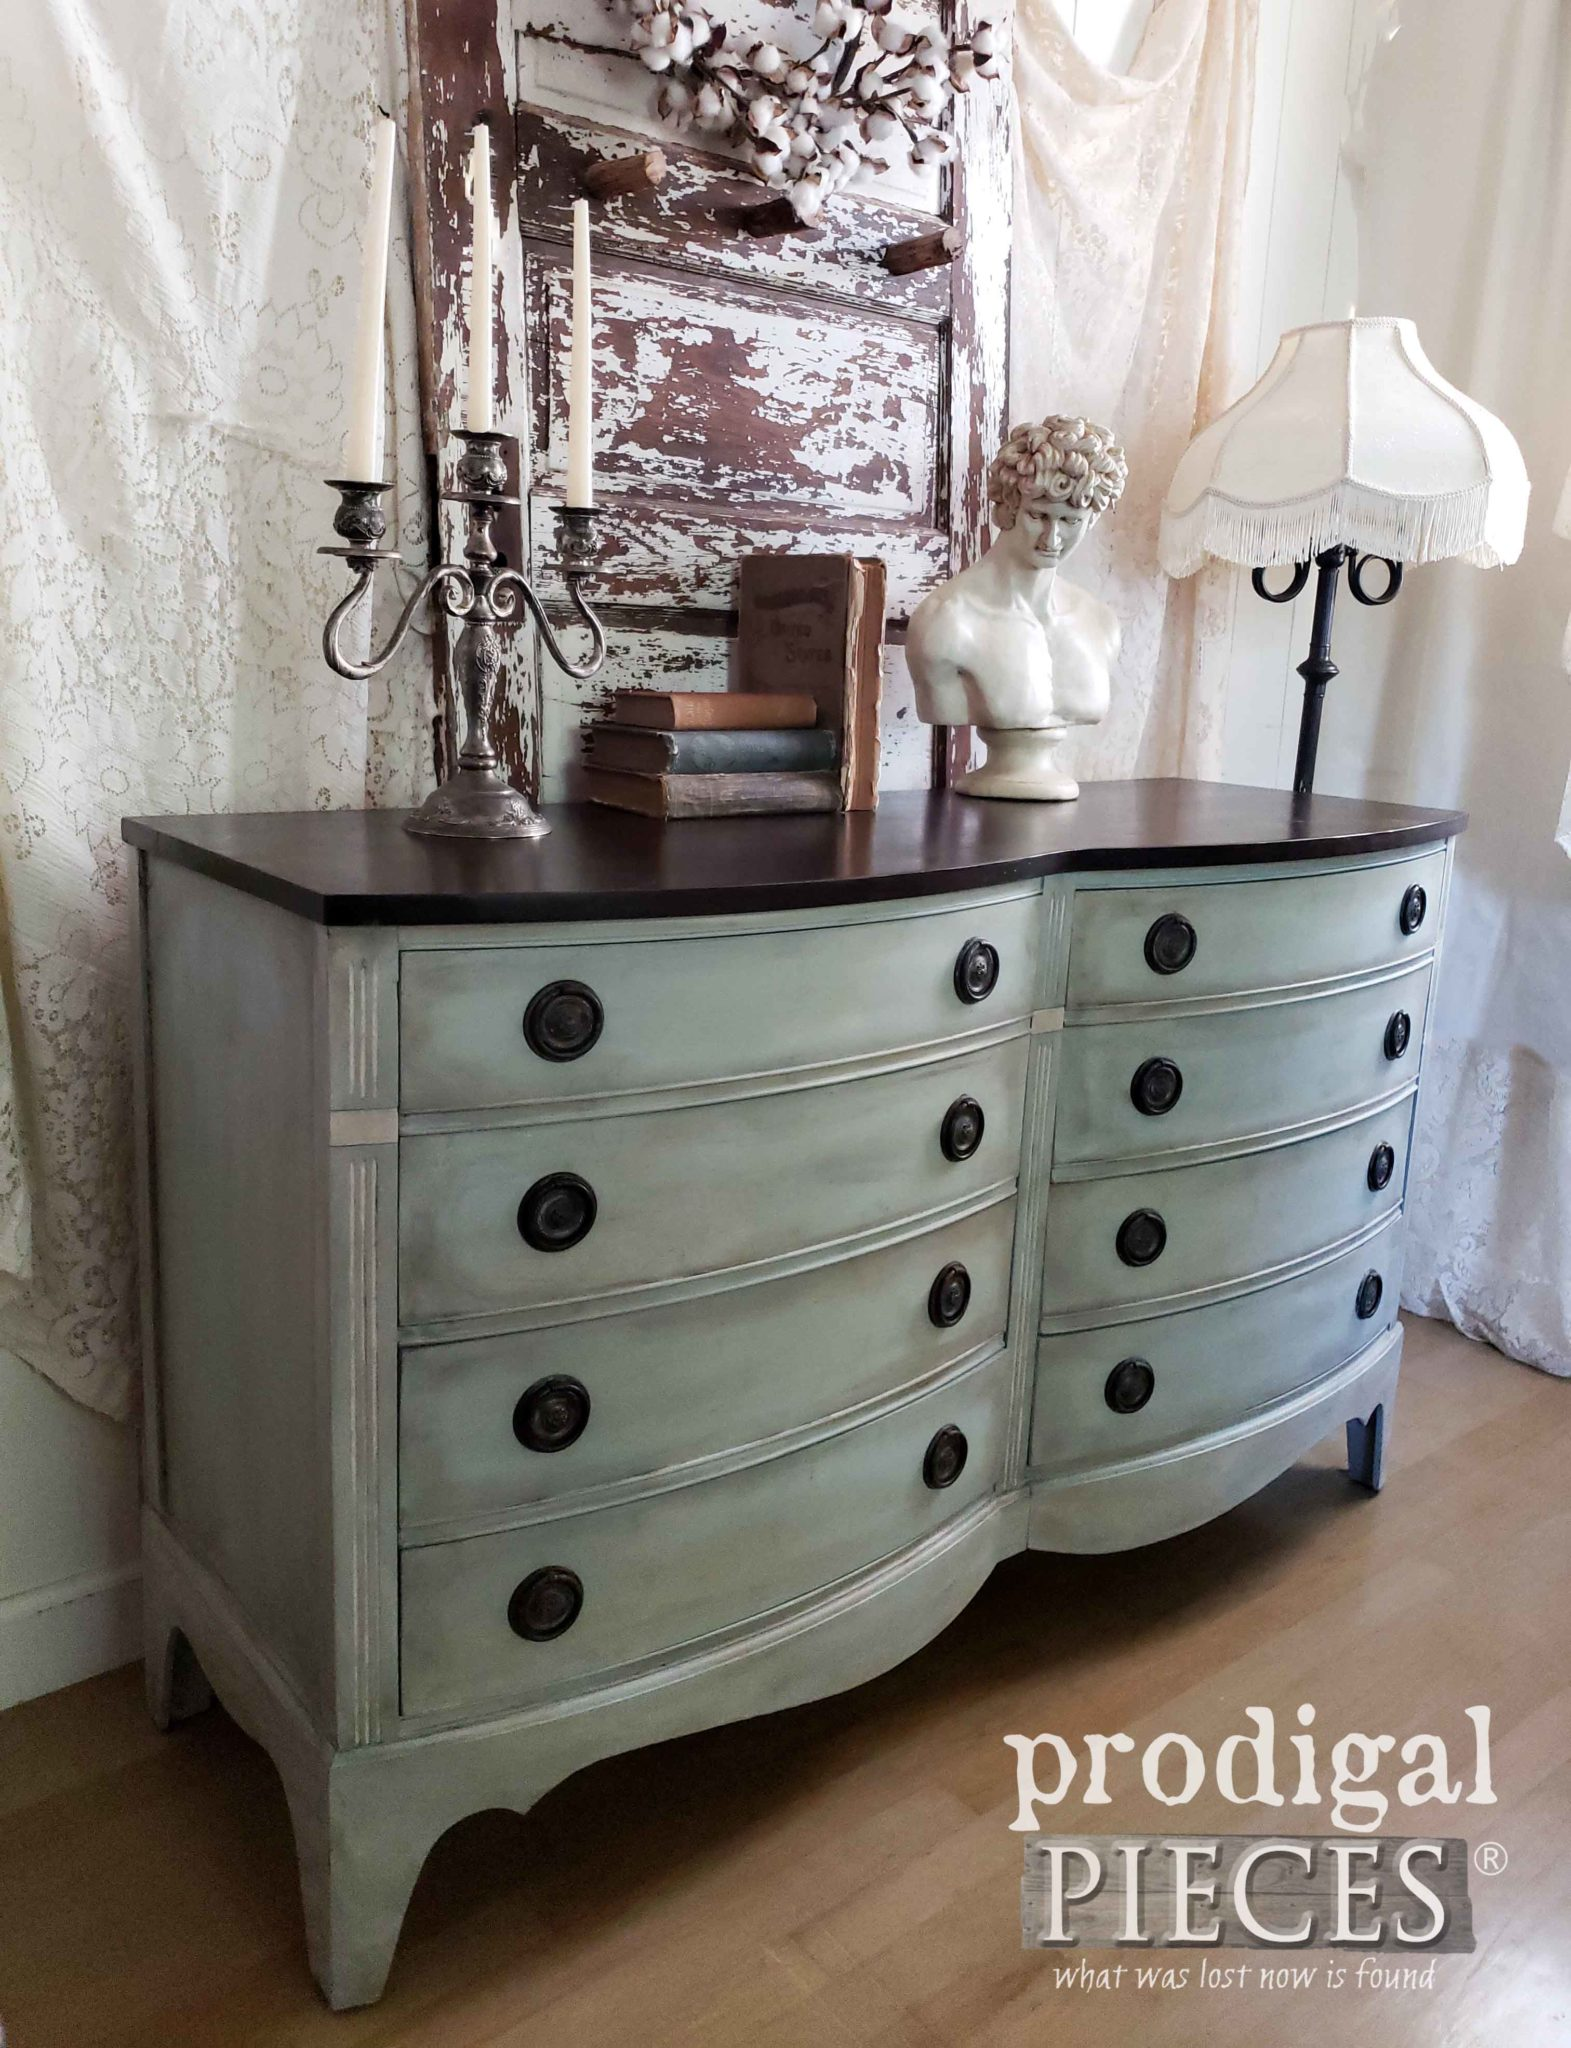 Elegant Vintage Bow Front Dresser done in Frottage Technique by Larissa of Prodigal Pieces | prodigalpieces.com